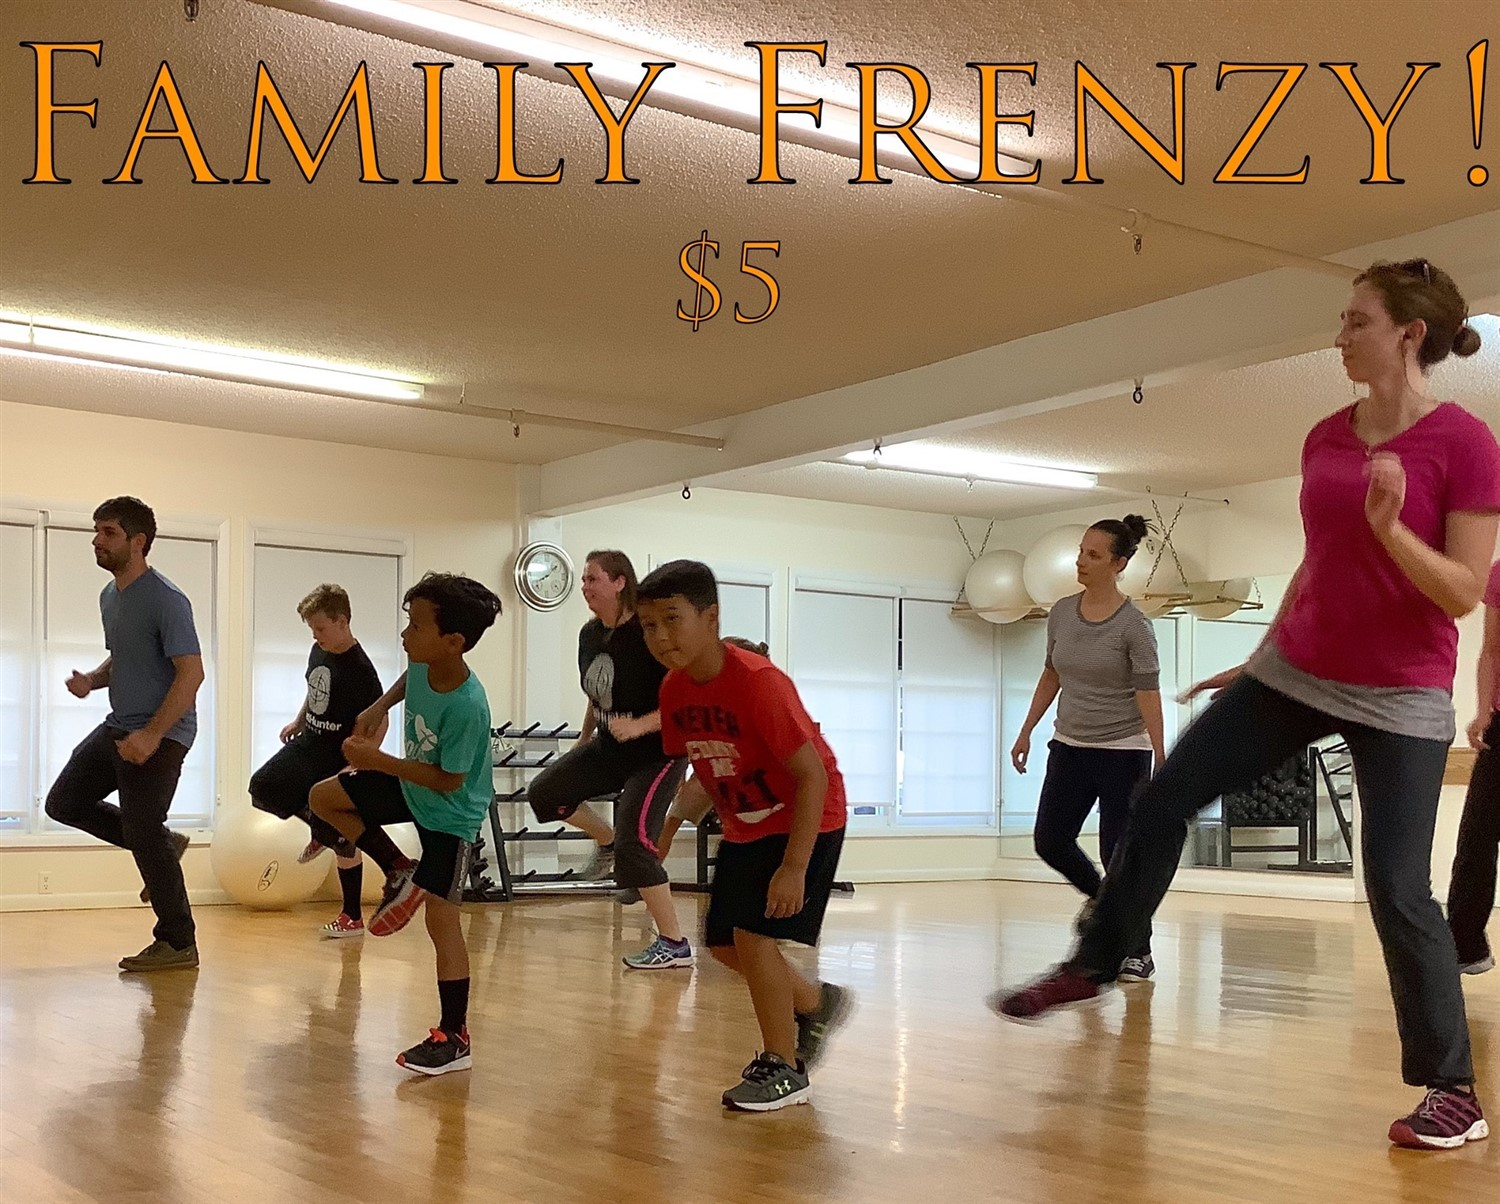 Family Frenzy! presented by Beathunter Dance on Sep 02, 00:00@FFX Theater - Buy tickets and Get information on Family Fun Xperience